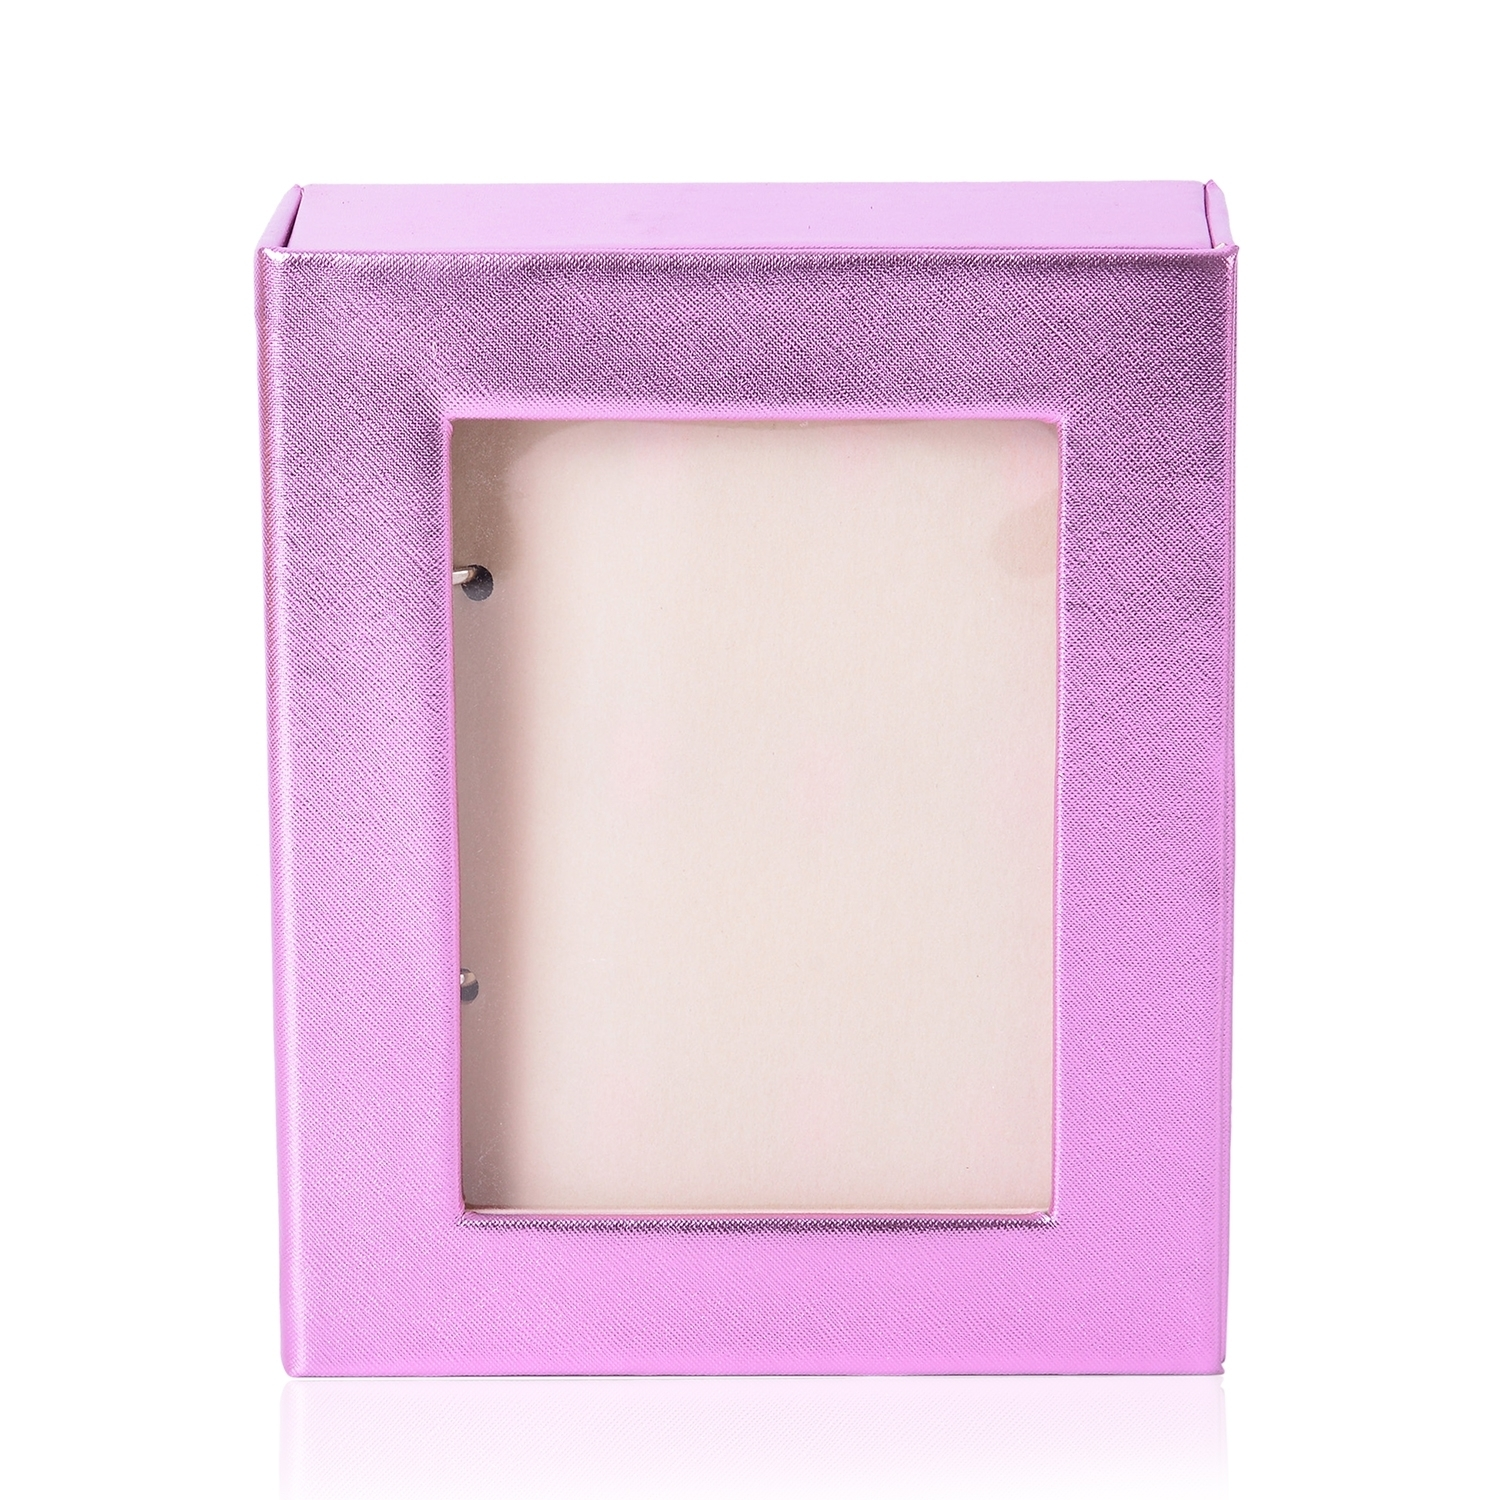 metallic pink 4 page transparent jewelry binder booklet with